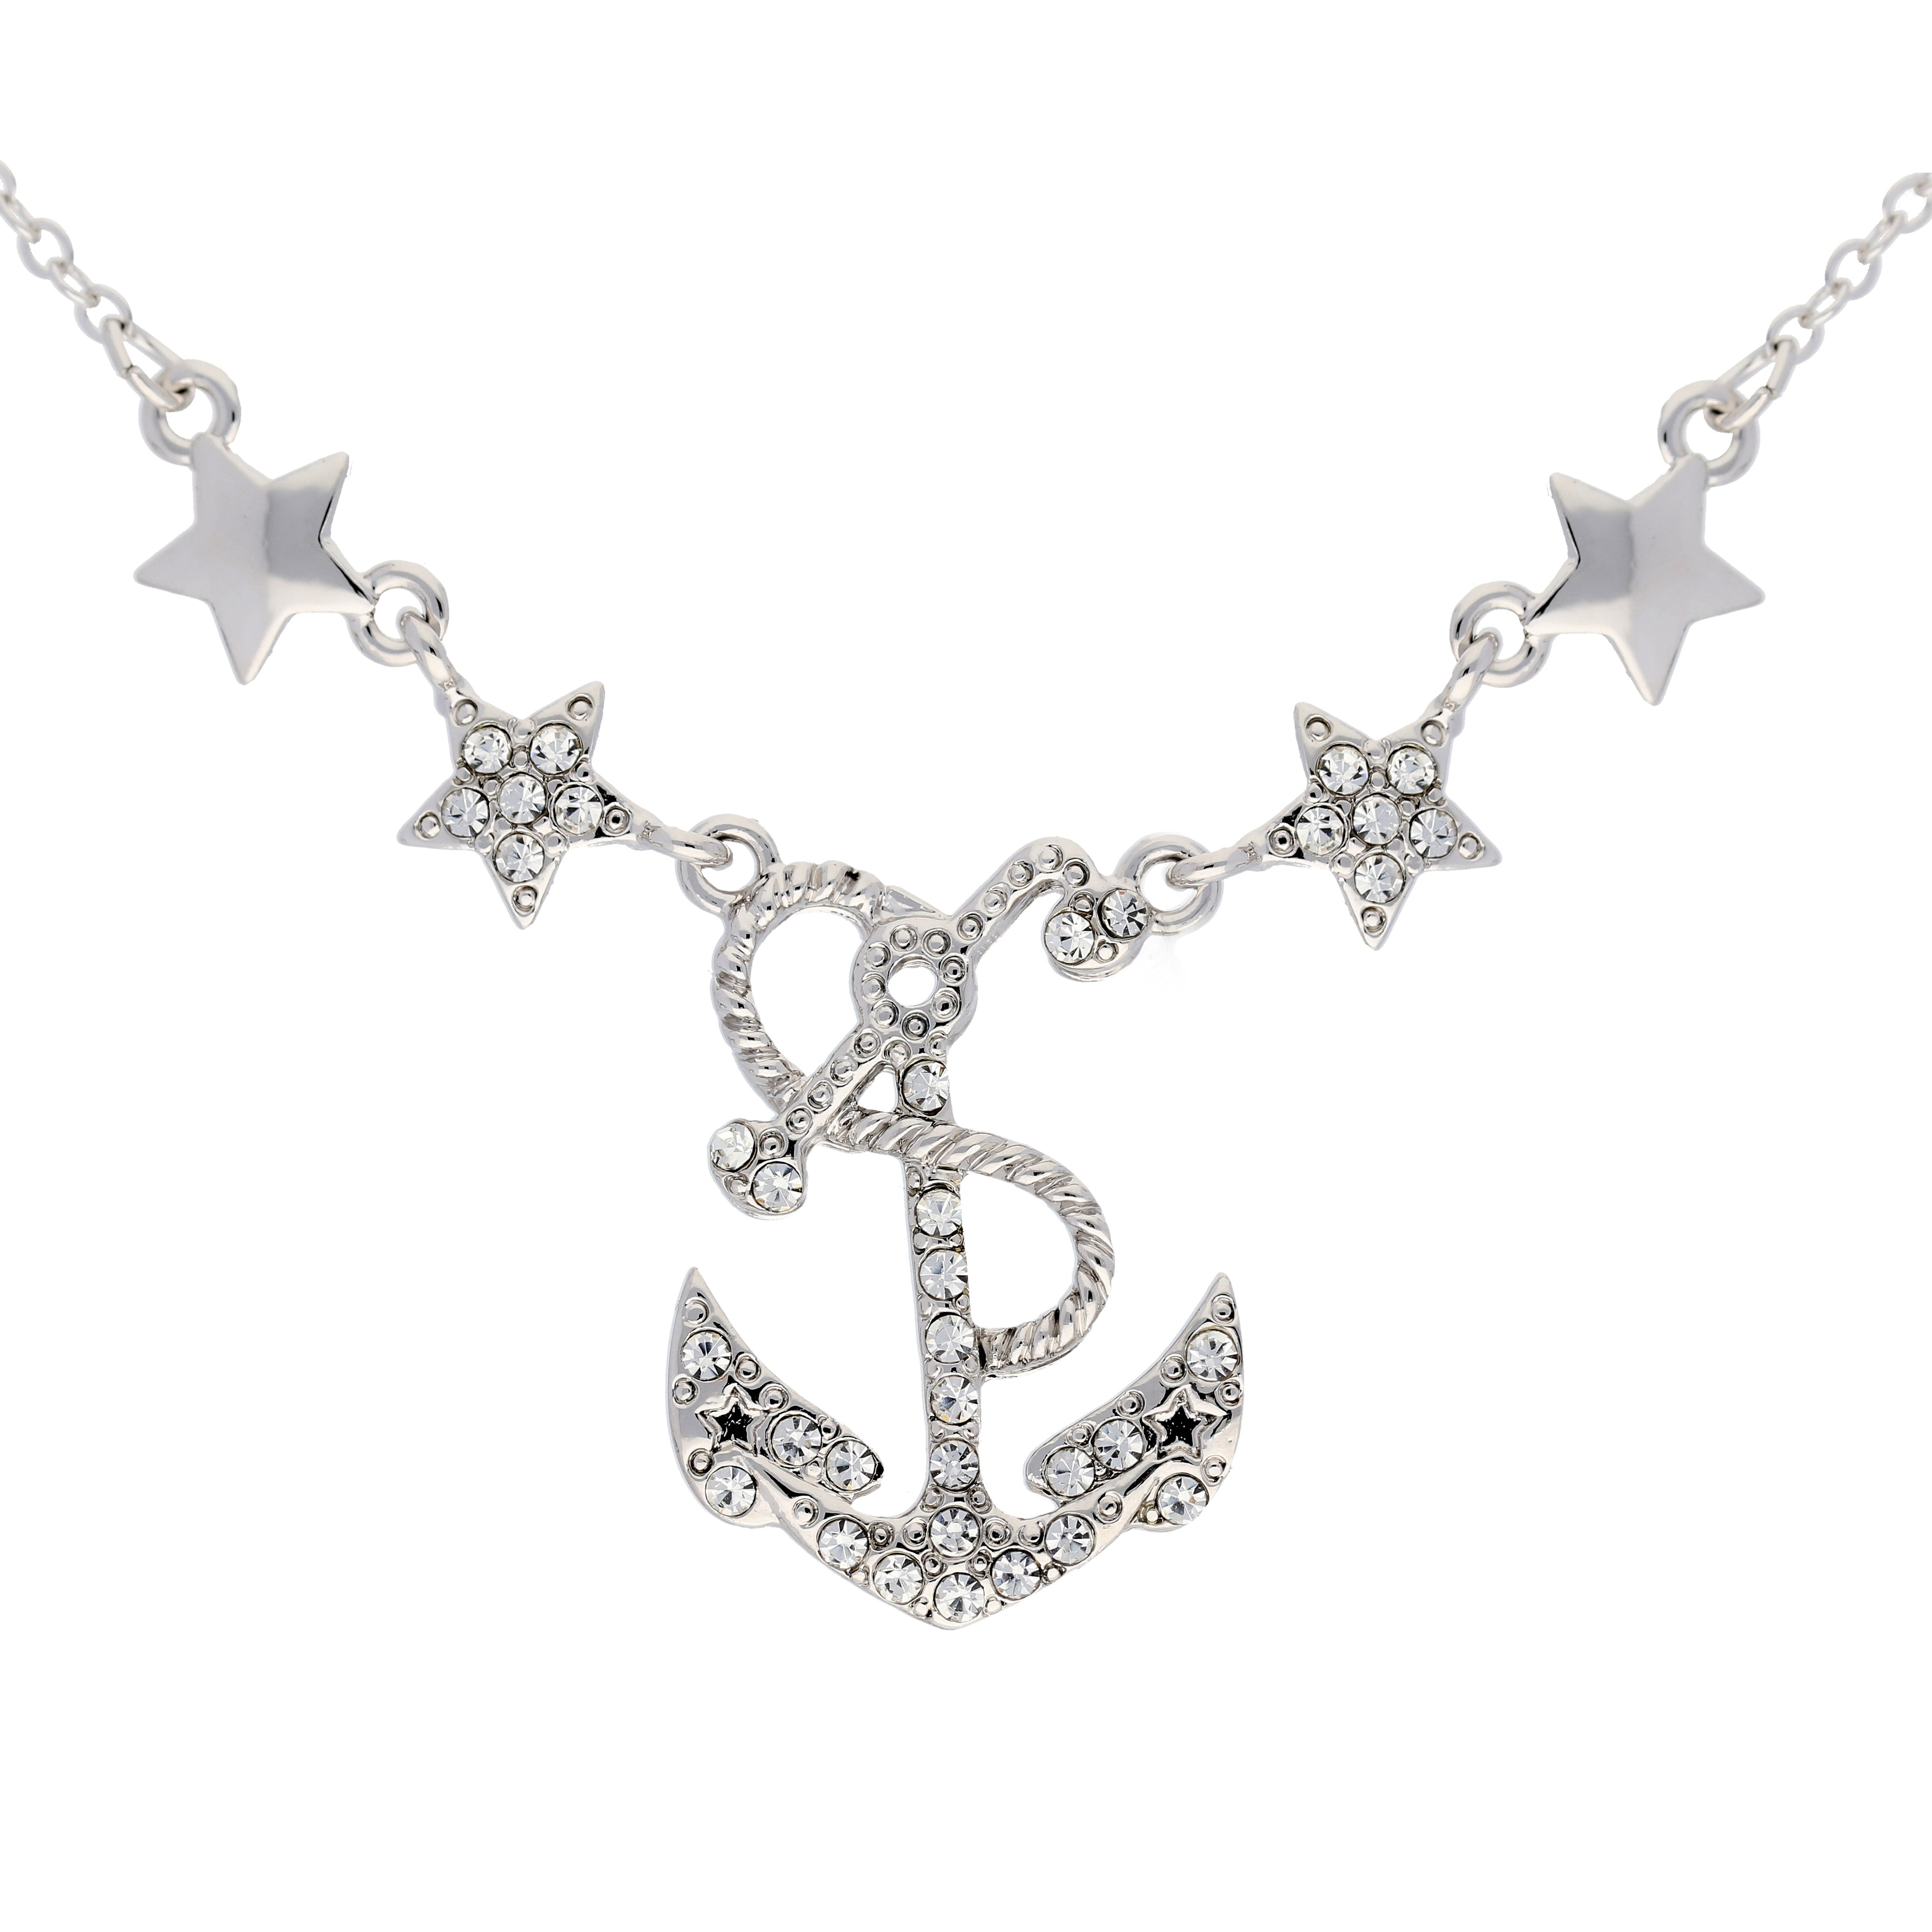 "Sailing Under the Stars - Anchor Necklace Adjustable from 16"" to 18"" Necklace - Silver Insanity"